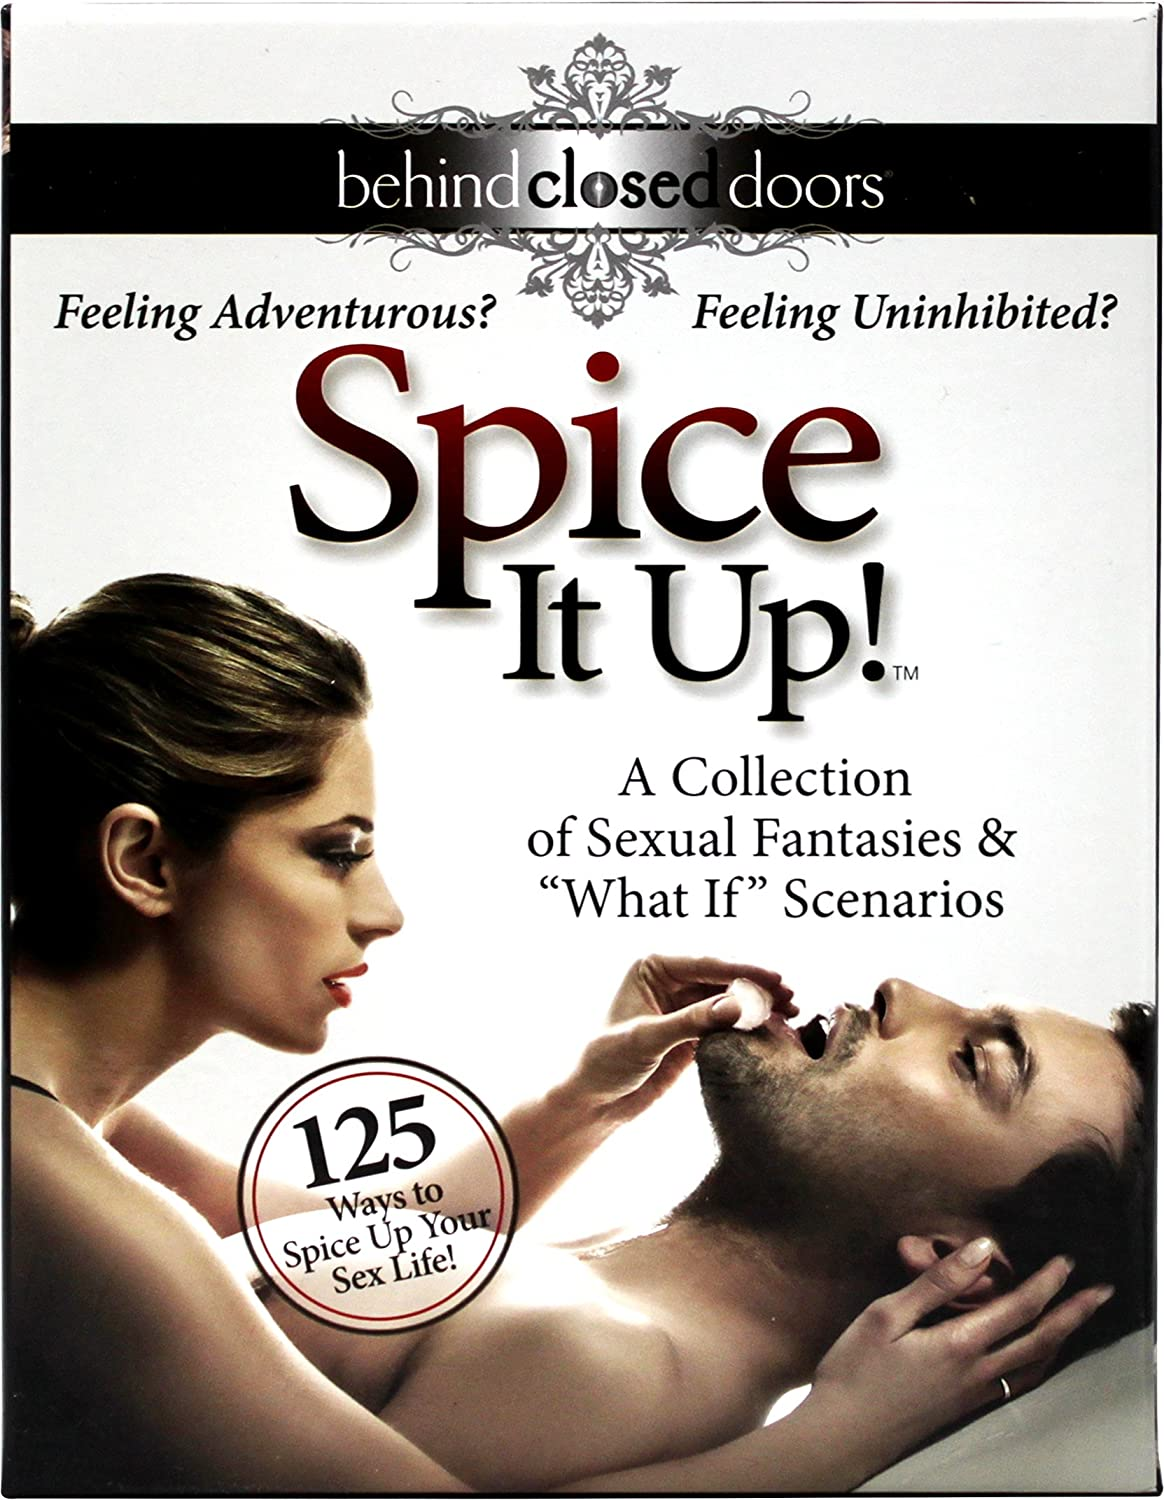 Spice up sex with fantasies of other women